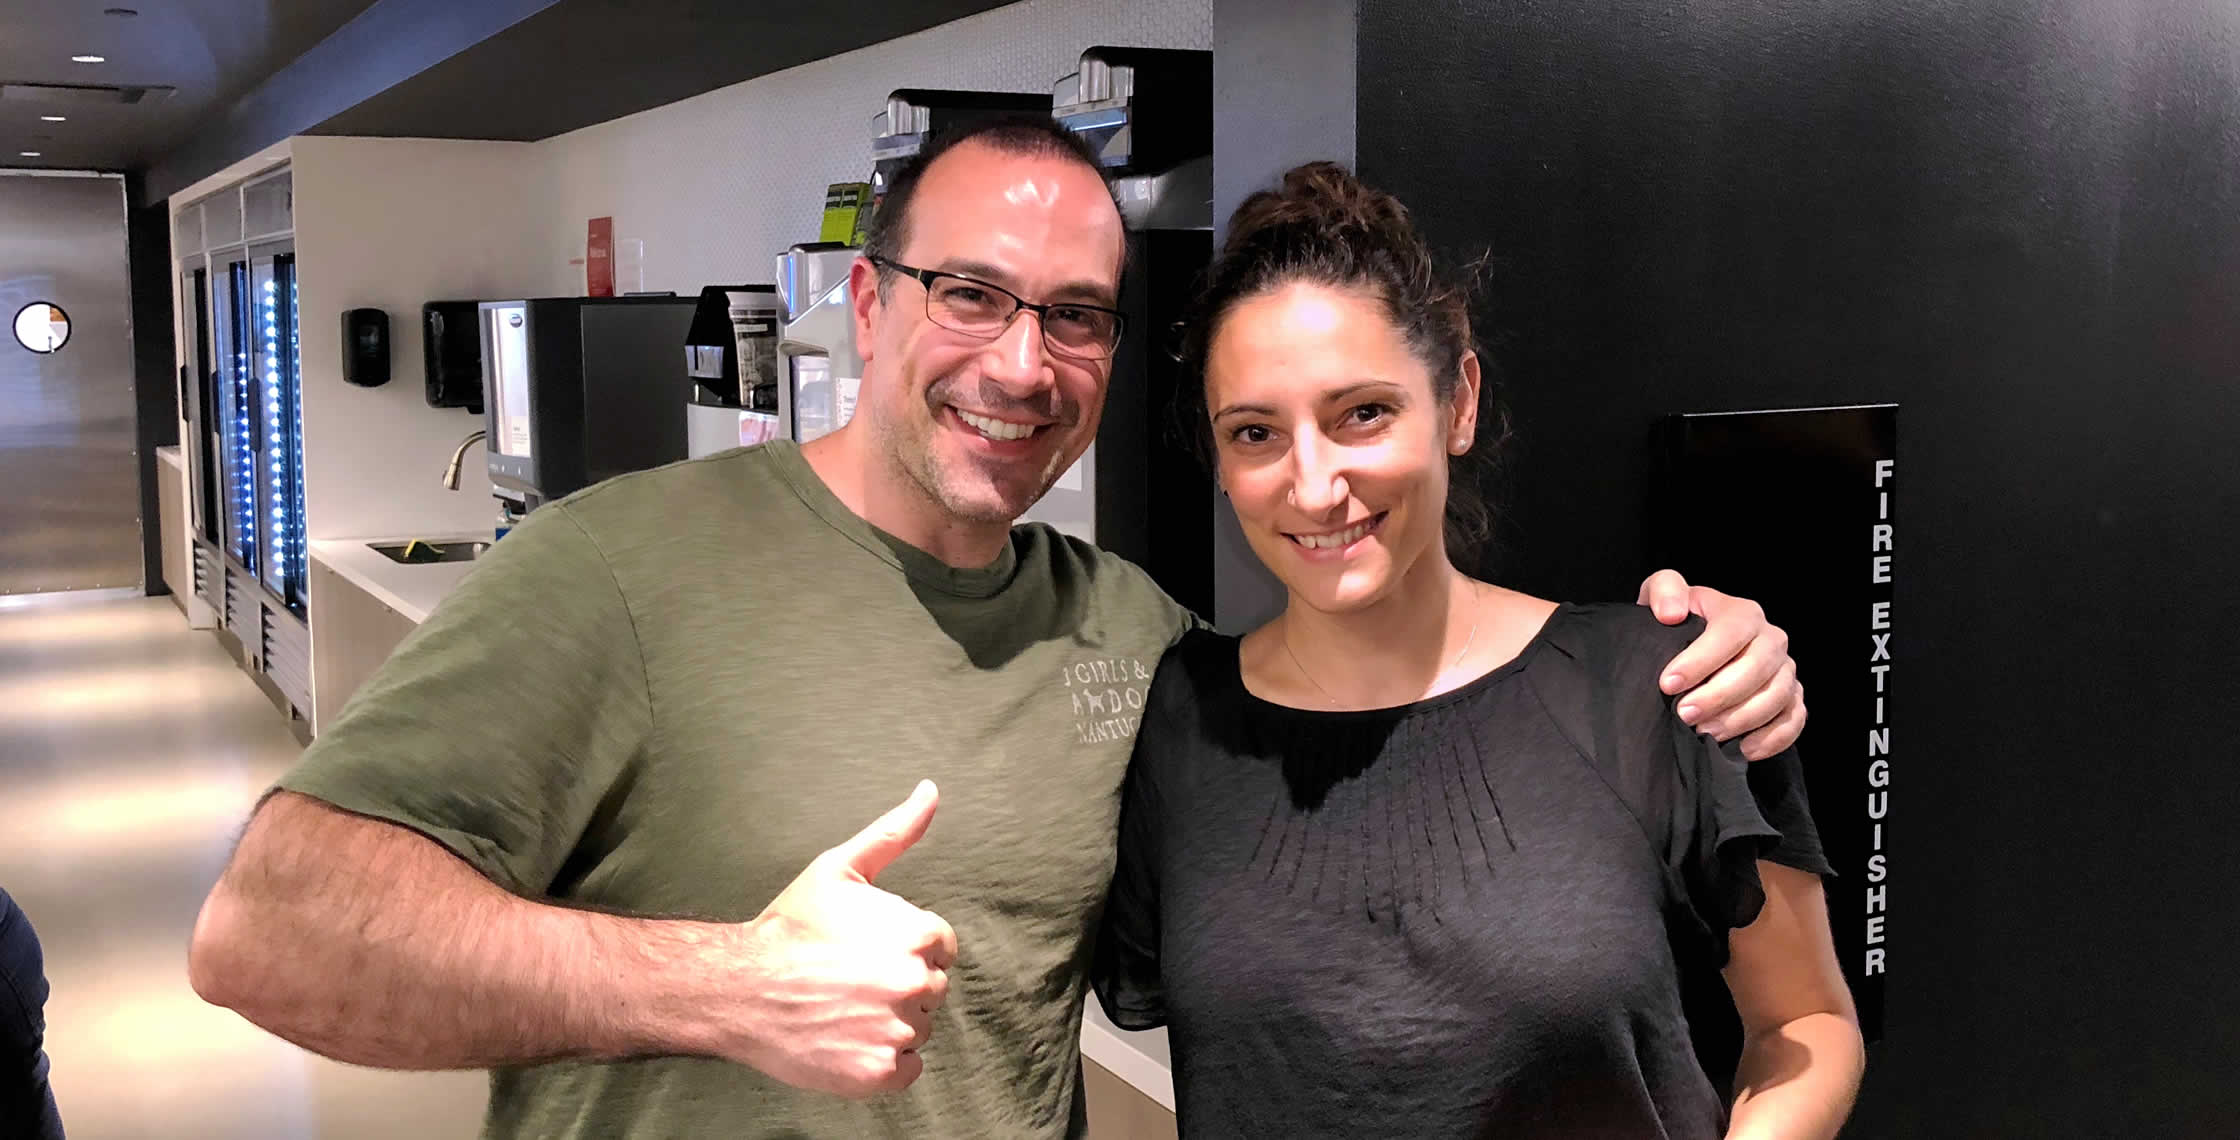 Ben Nadel at the NYC Node.js Meetup (Sep. 2018) with: Manon Metais